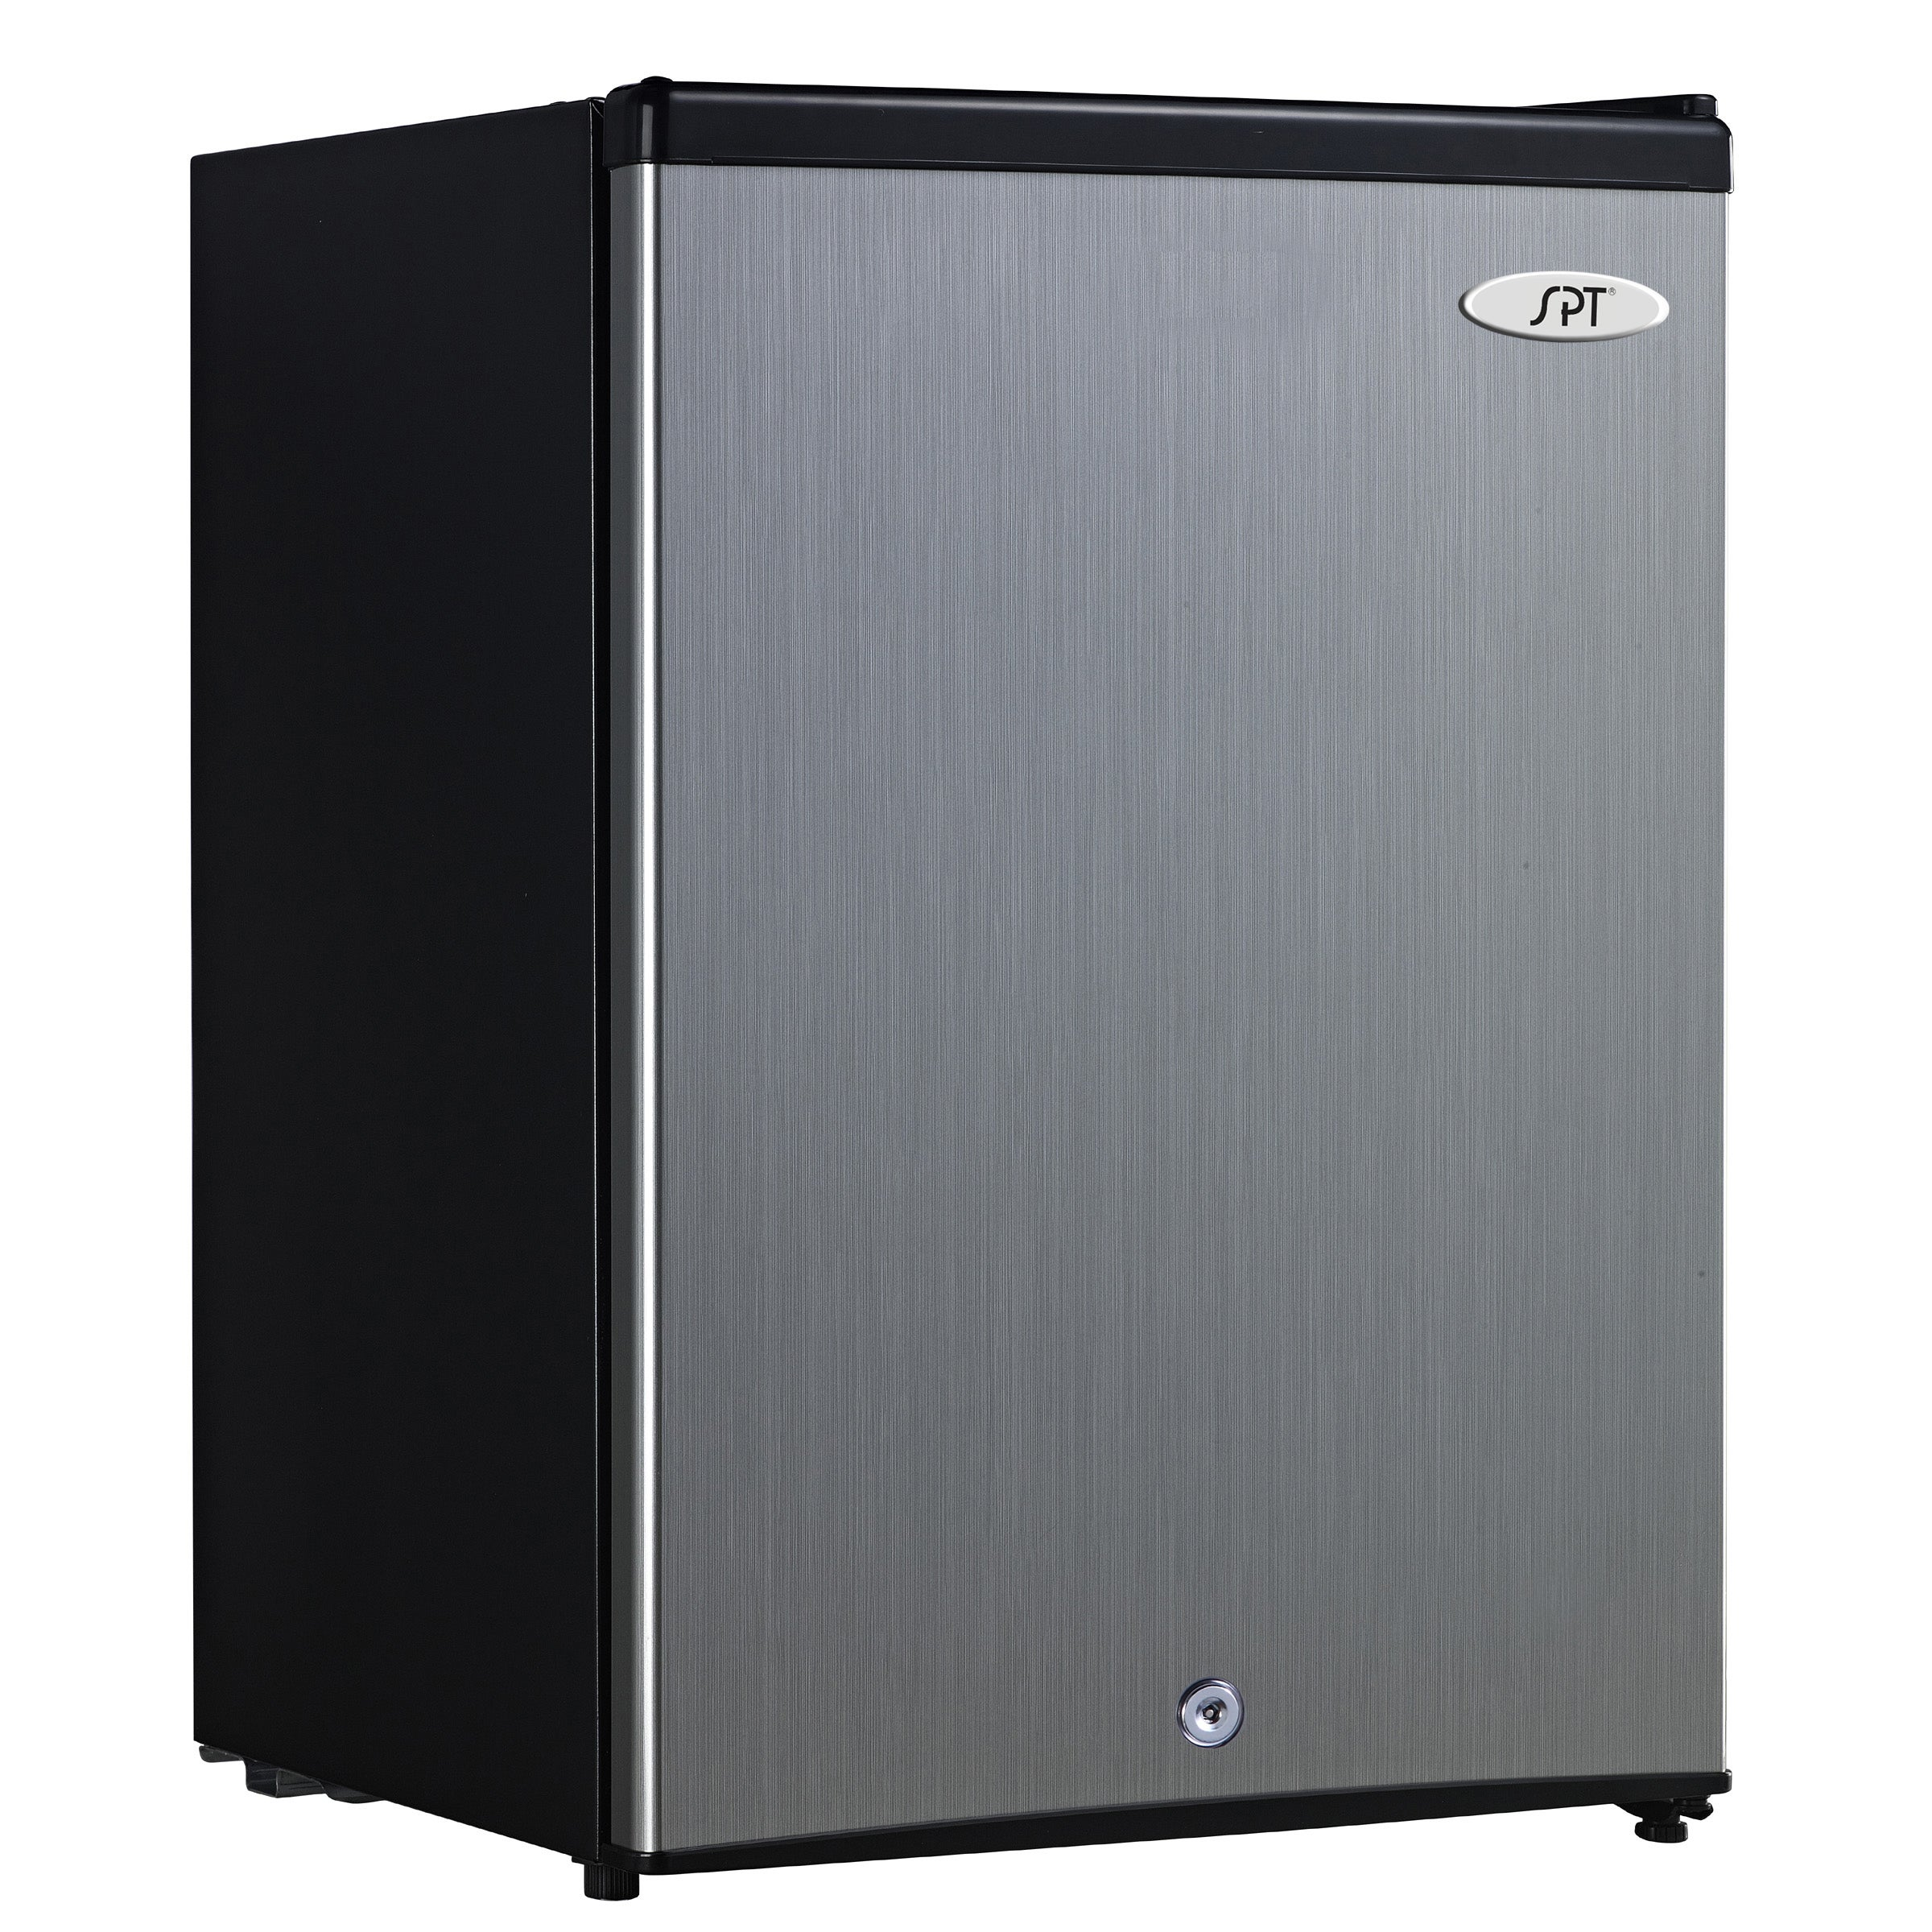 Antarctic Star Compact Chest Upright Freezer Single Door Reversible Stainless Steel Door Compact Adjustable Removable Shelves for Home Office 3.0 cu.Black